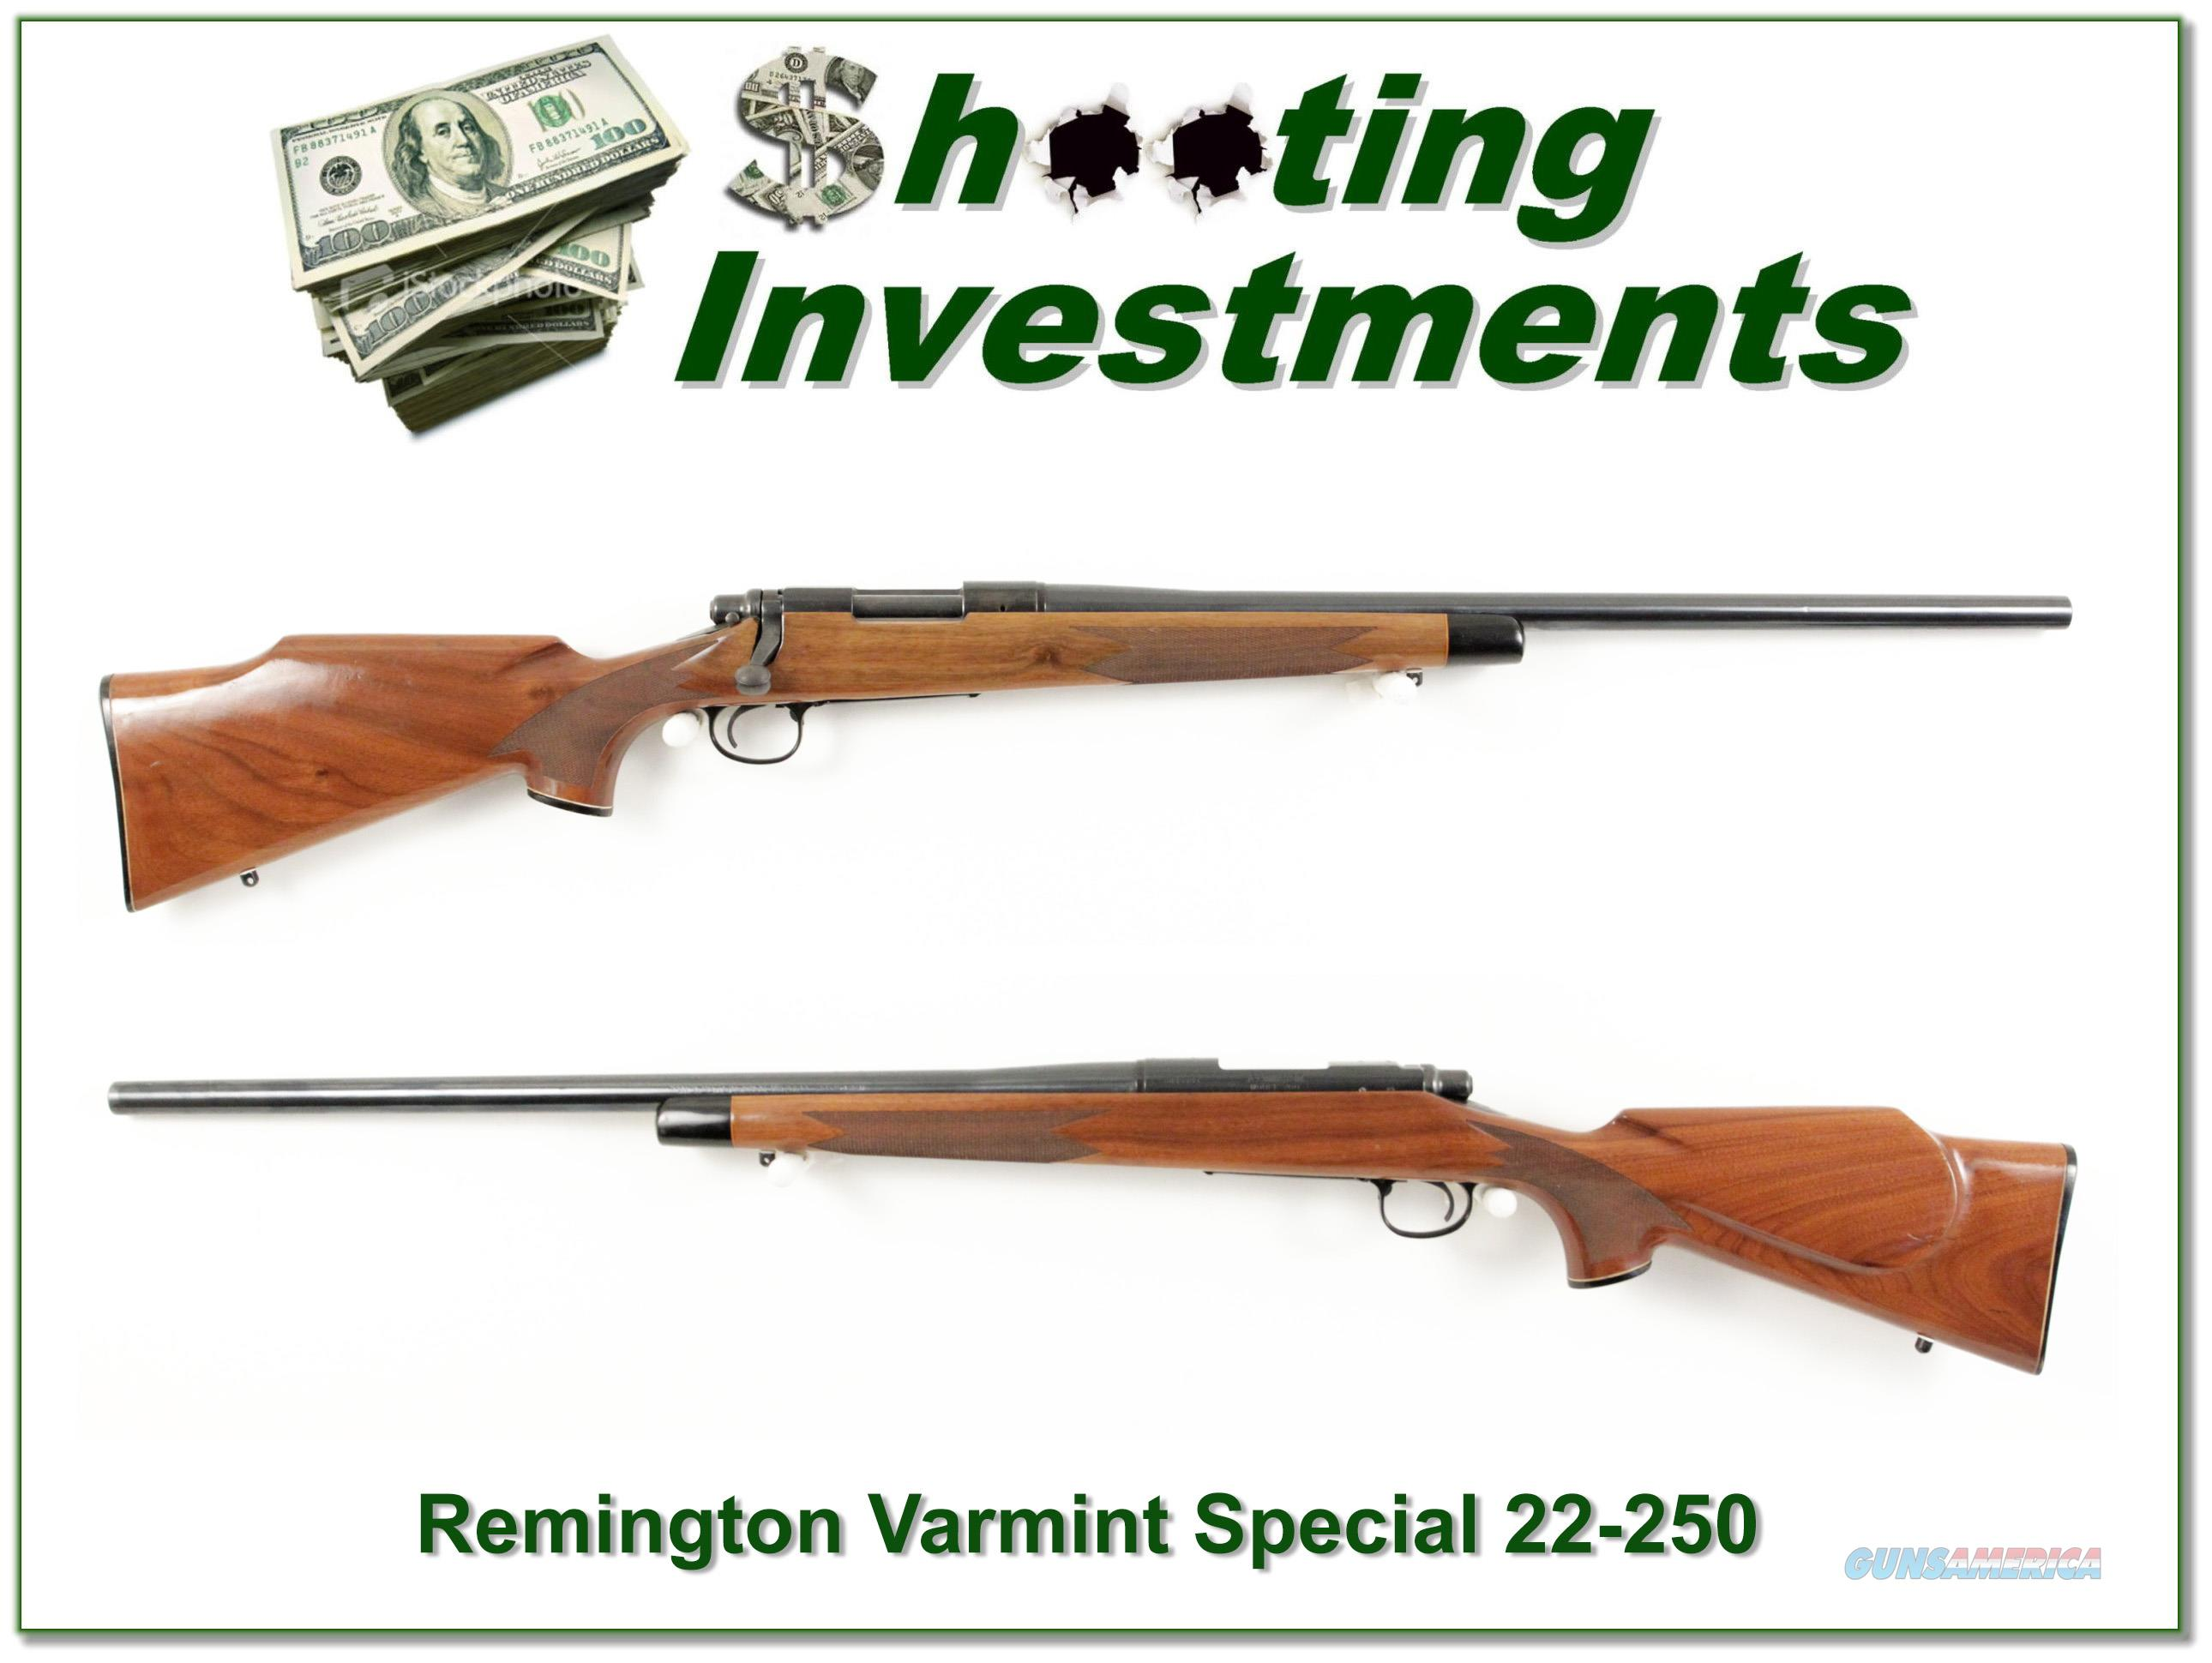 Remington 700 Varmint Special 22-250  Guns > Rifles > Remington Rifles - Modern > Model 700 > Sporting